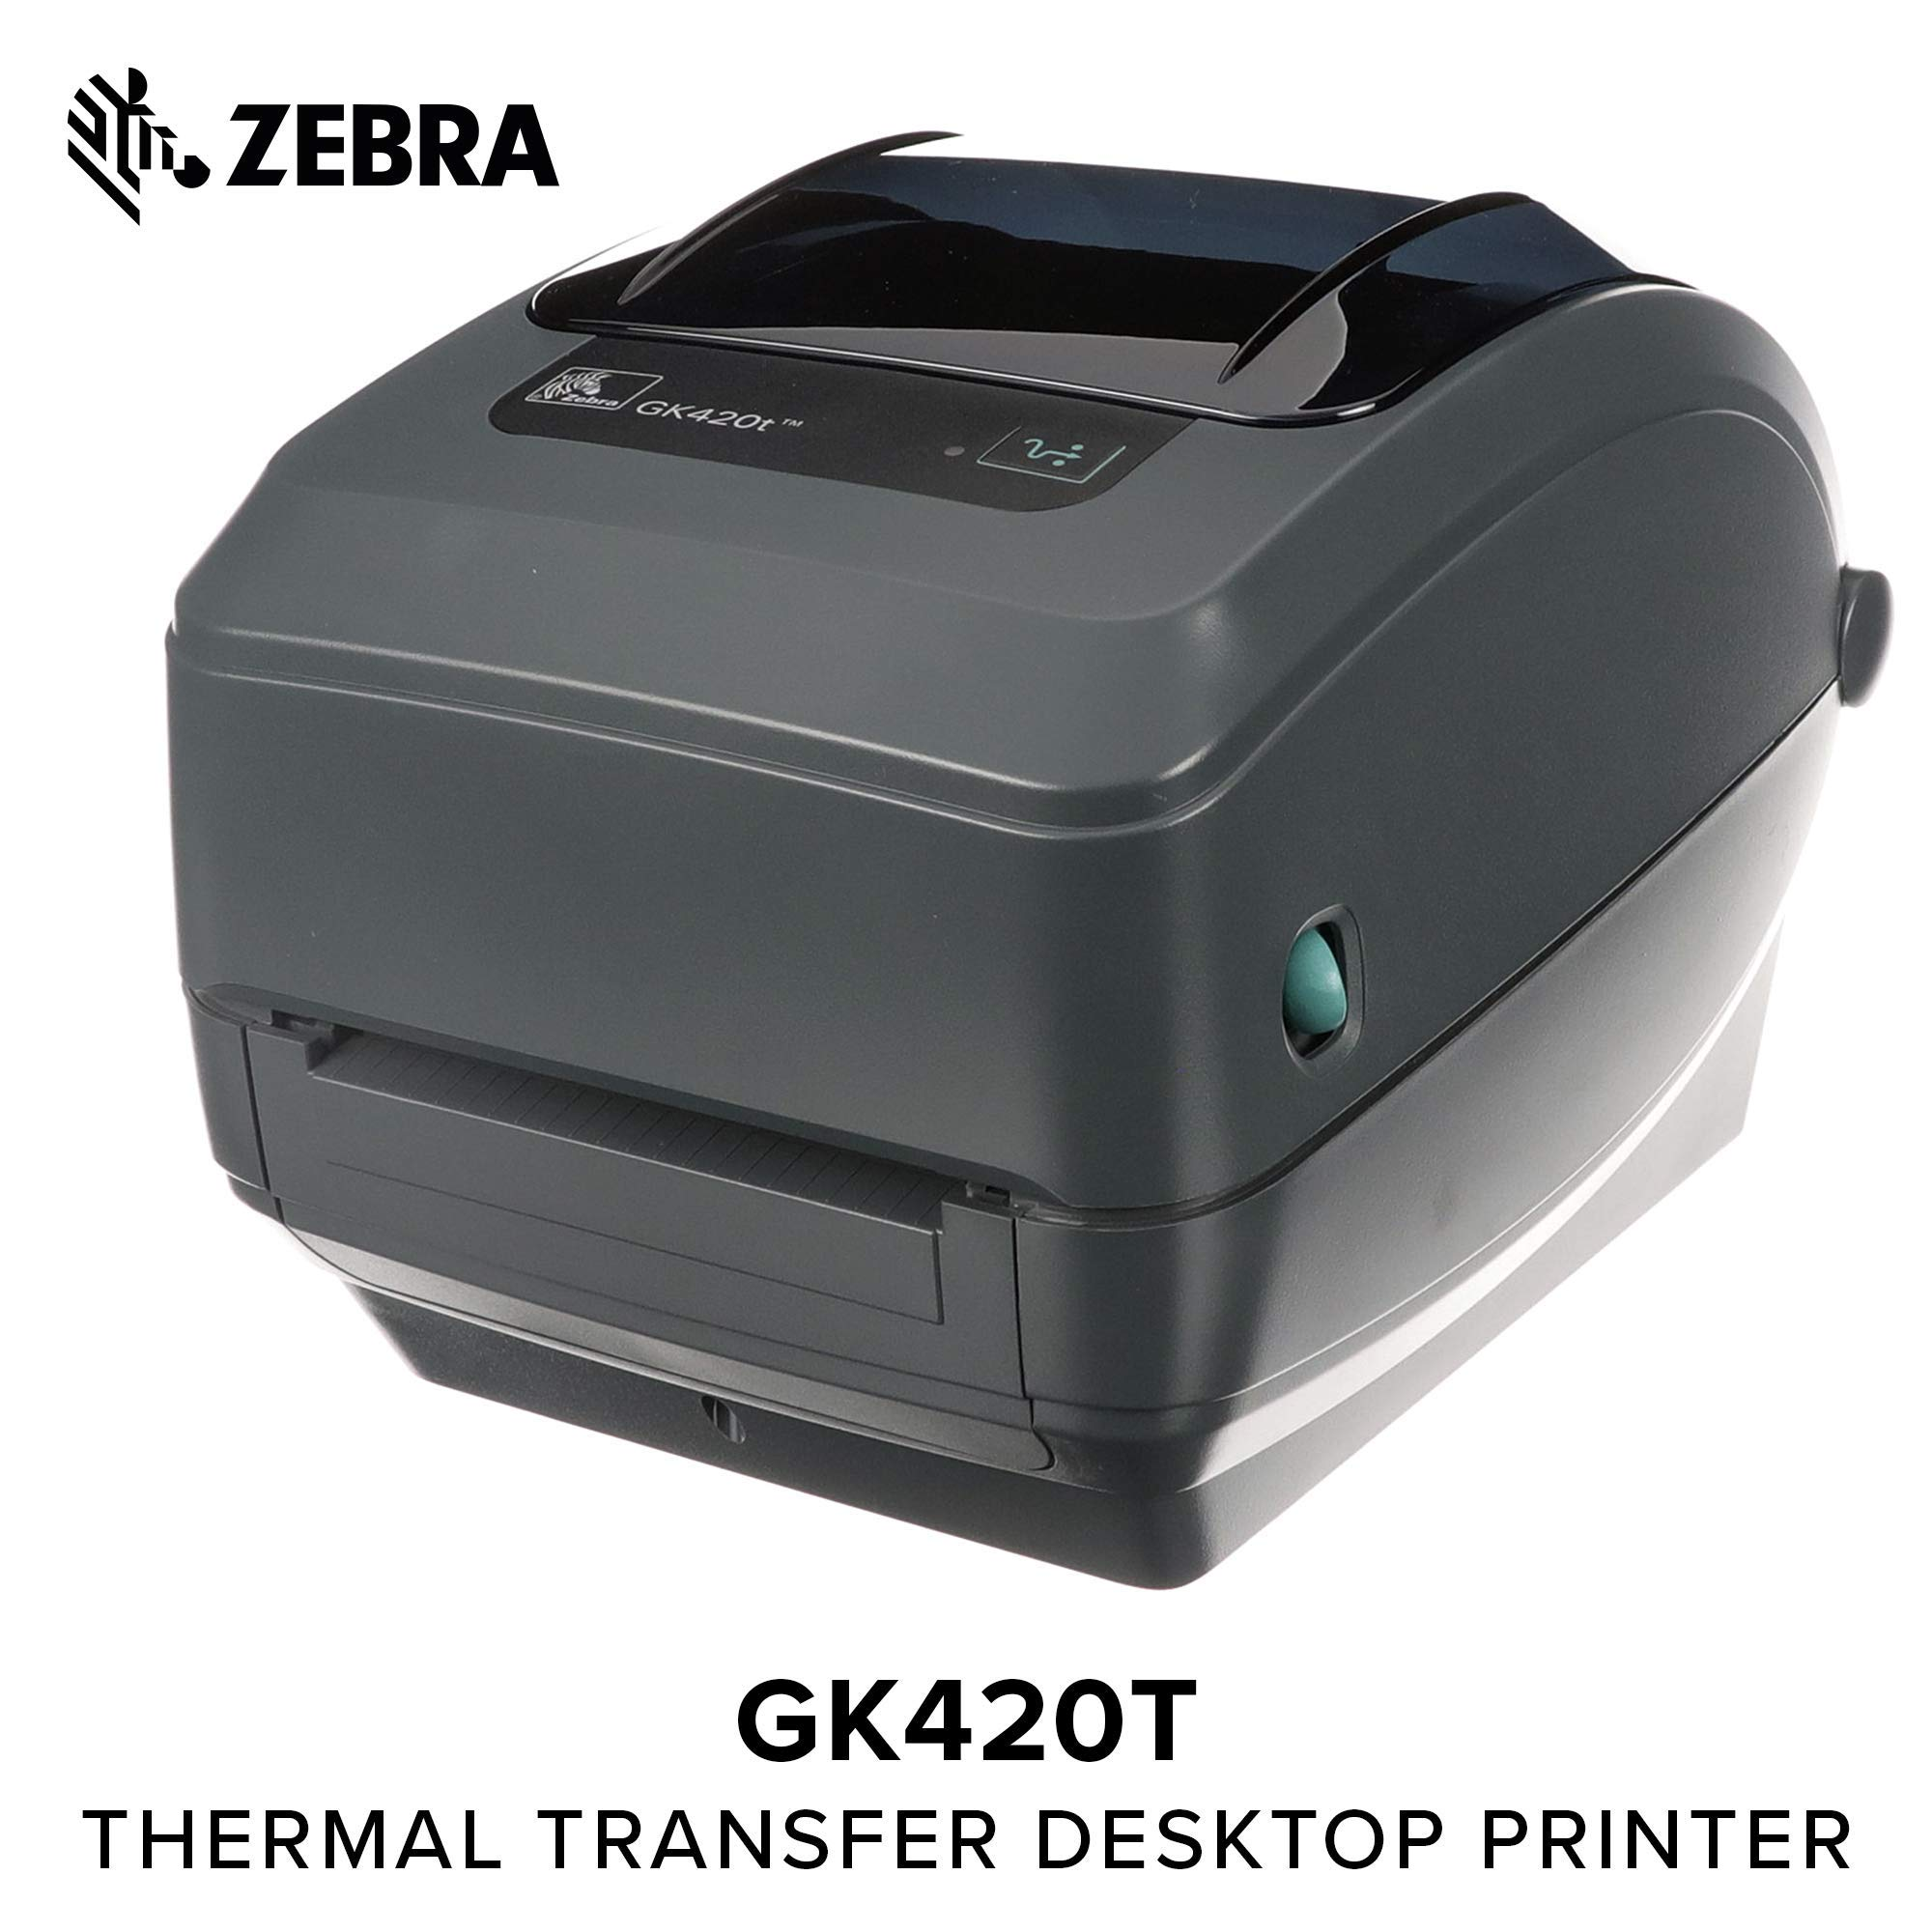 Zebra - GK420t Thermal Transfer Desktop Printer for Labels, Receipts, Barcodes, Tags, and Wrist Bands - Print Width of 4 in - USB and Ethernet Port Connectivity (Renewed)